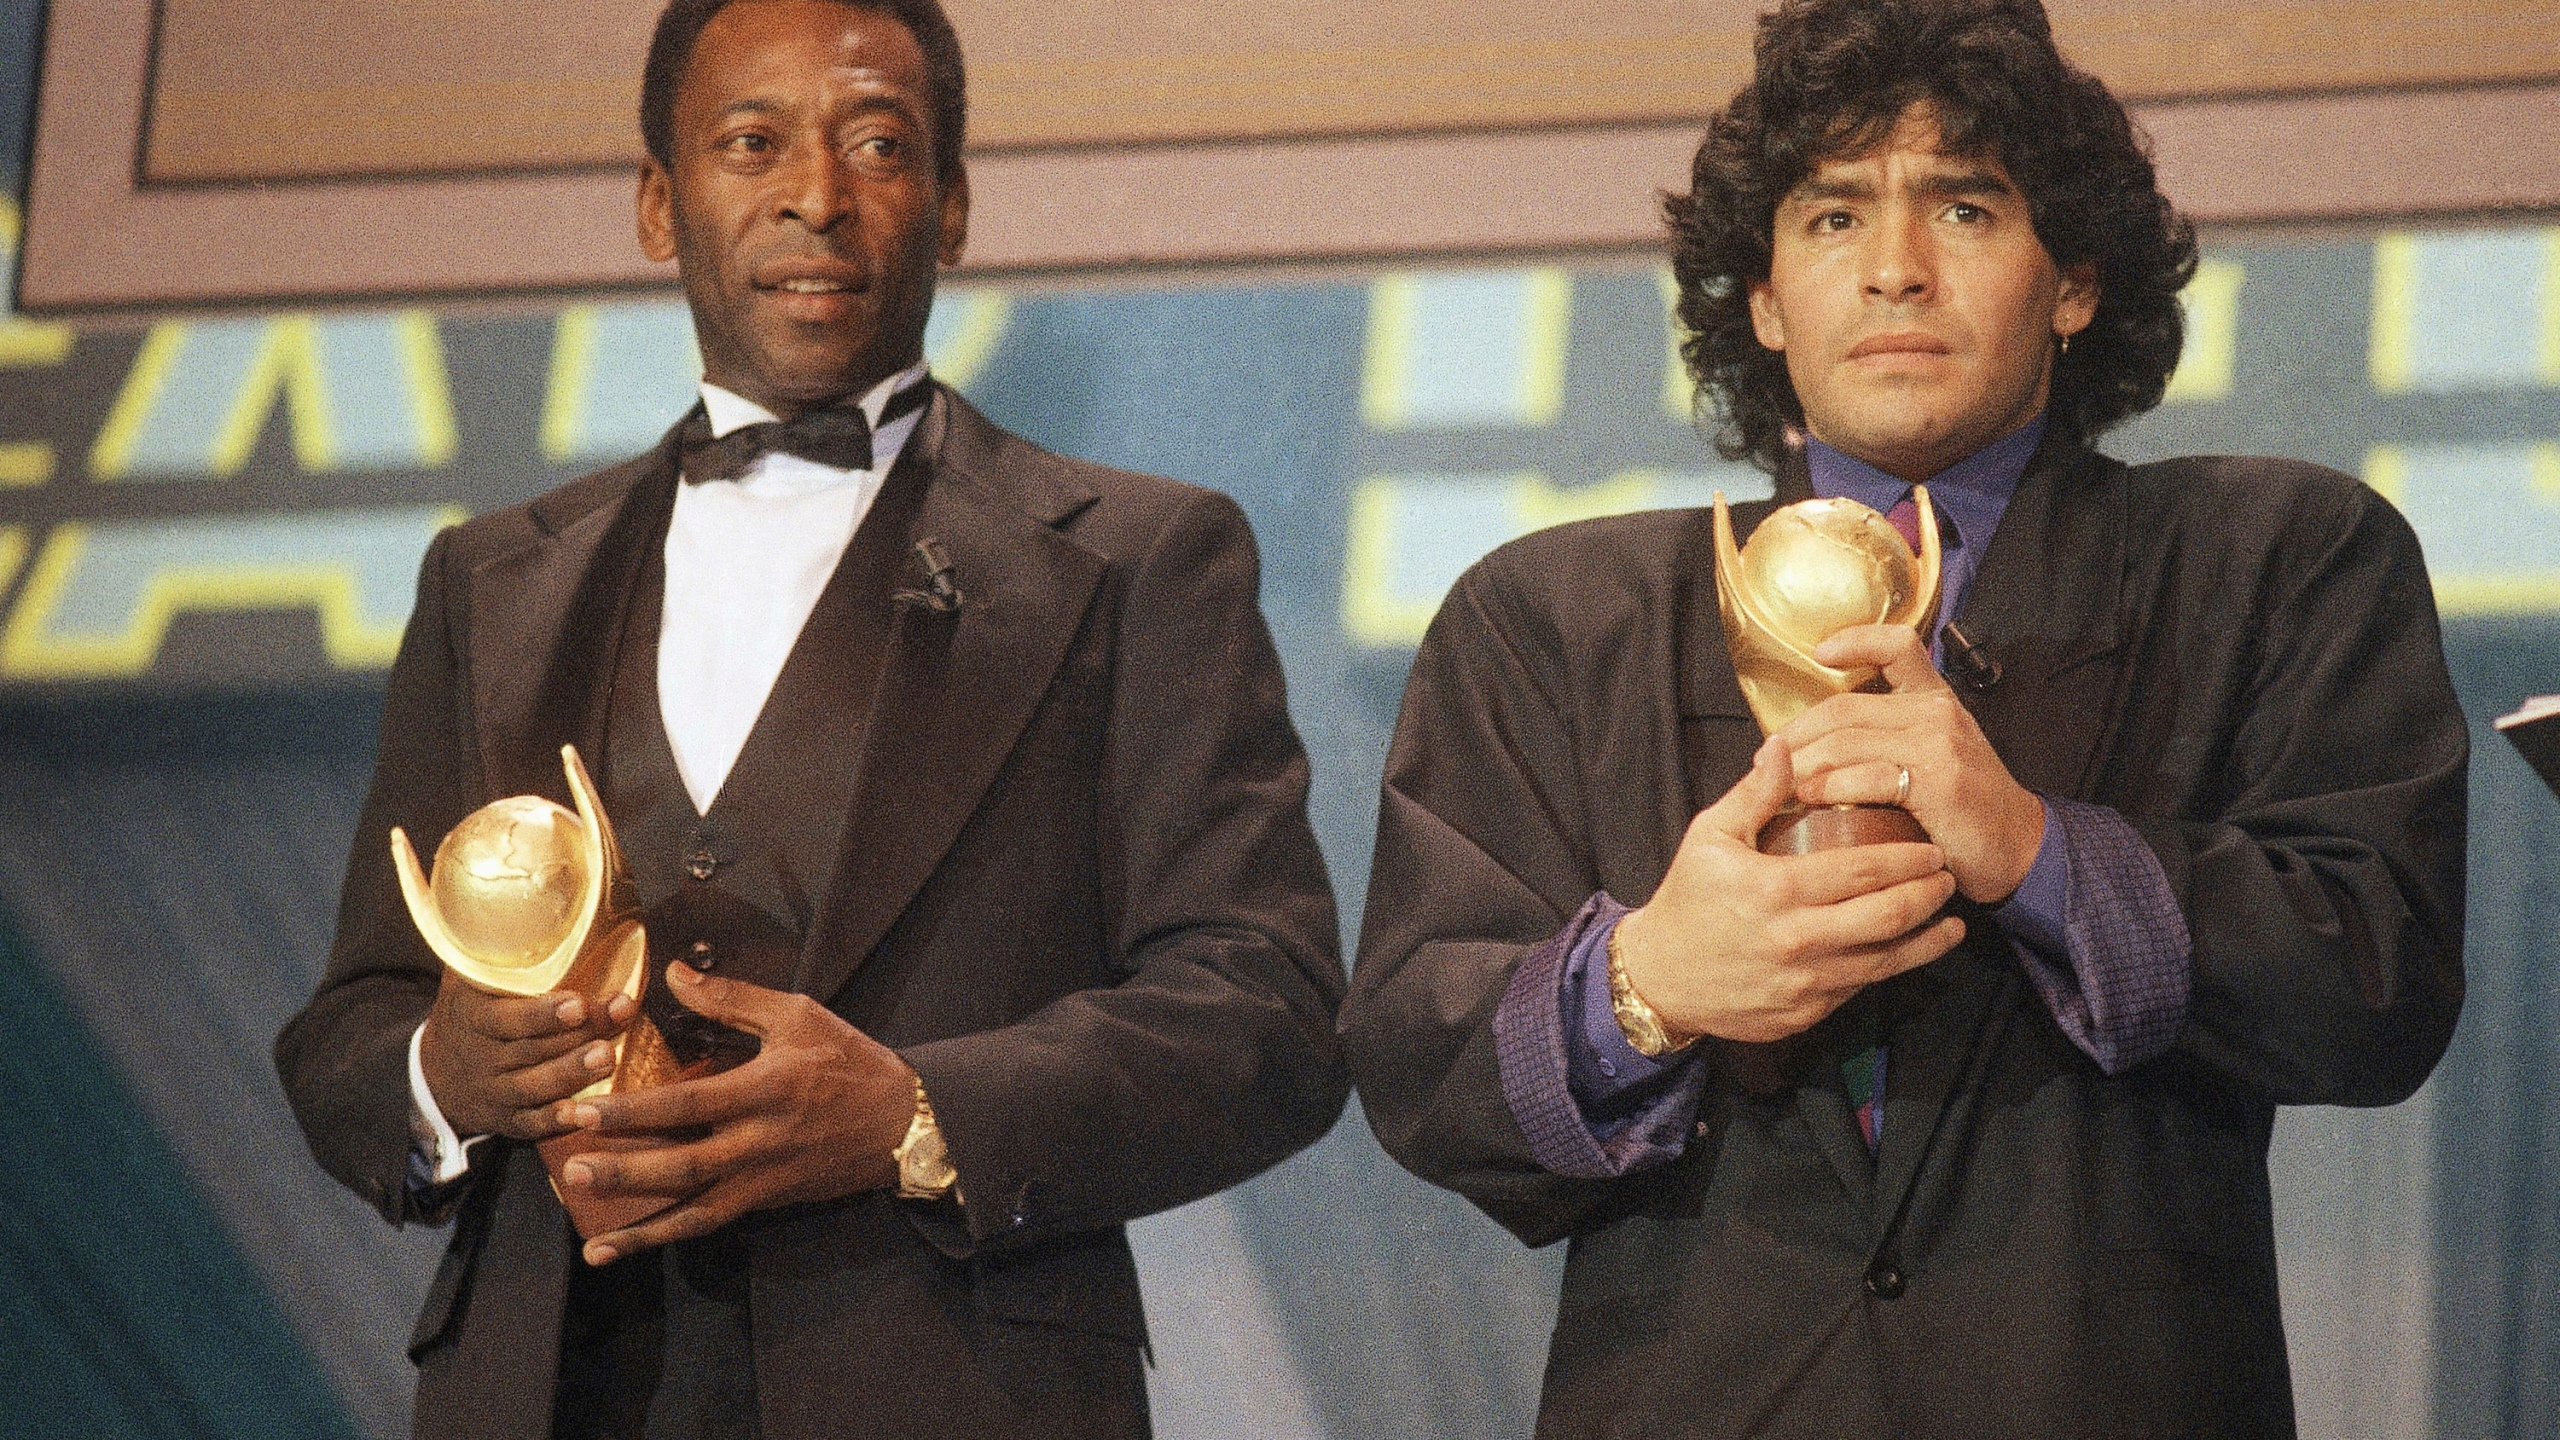 Feuding no more, Pelé joins world in mourning Diego Maradona | CBS 42